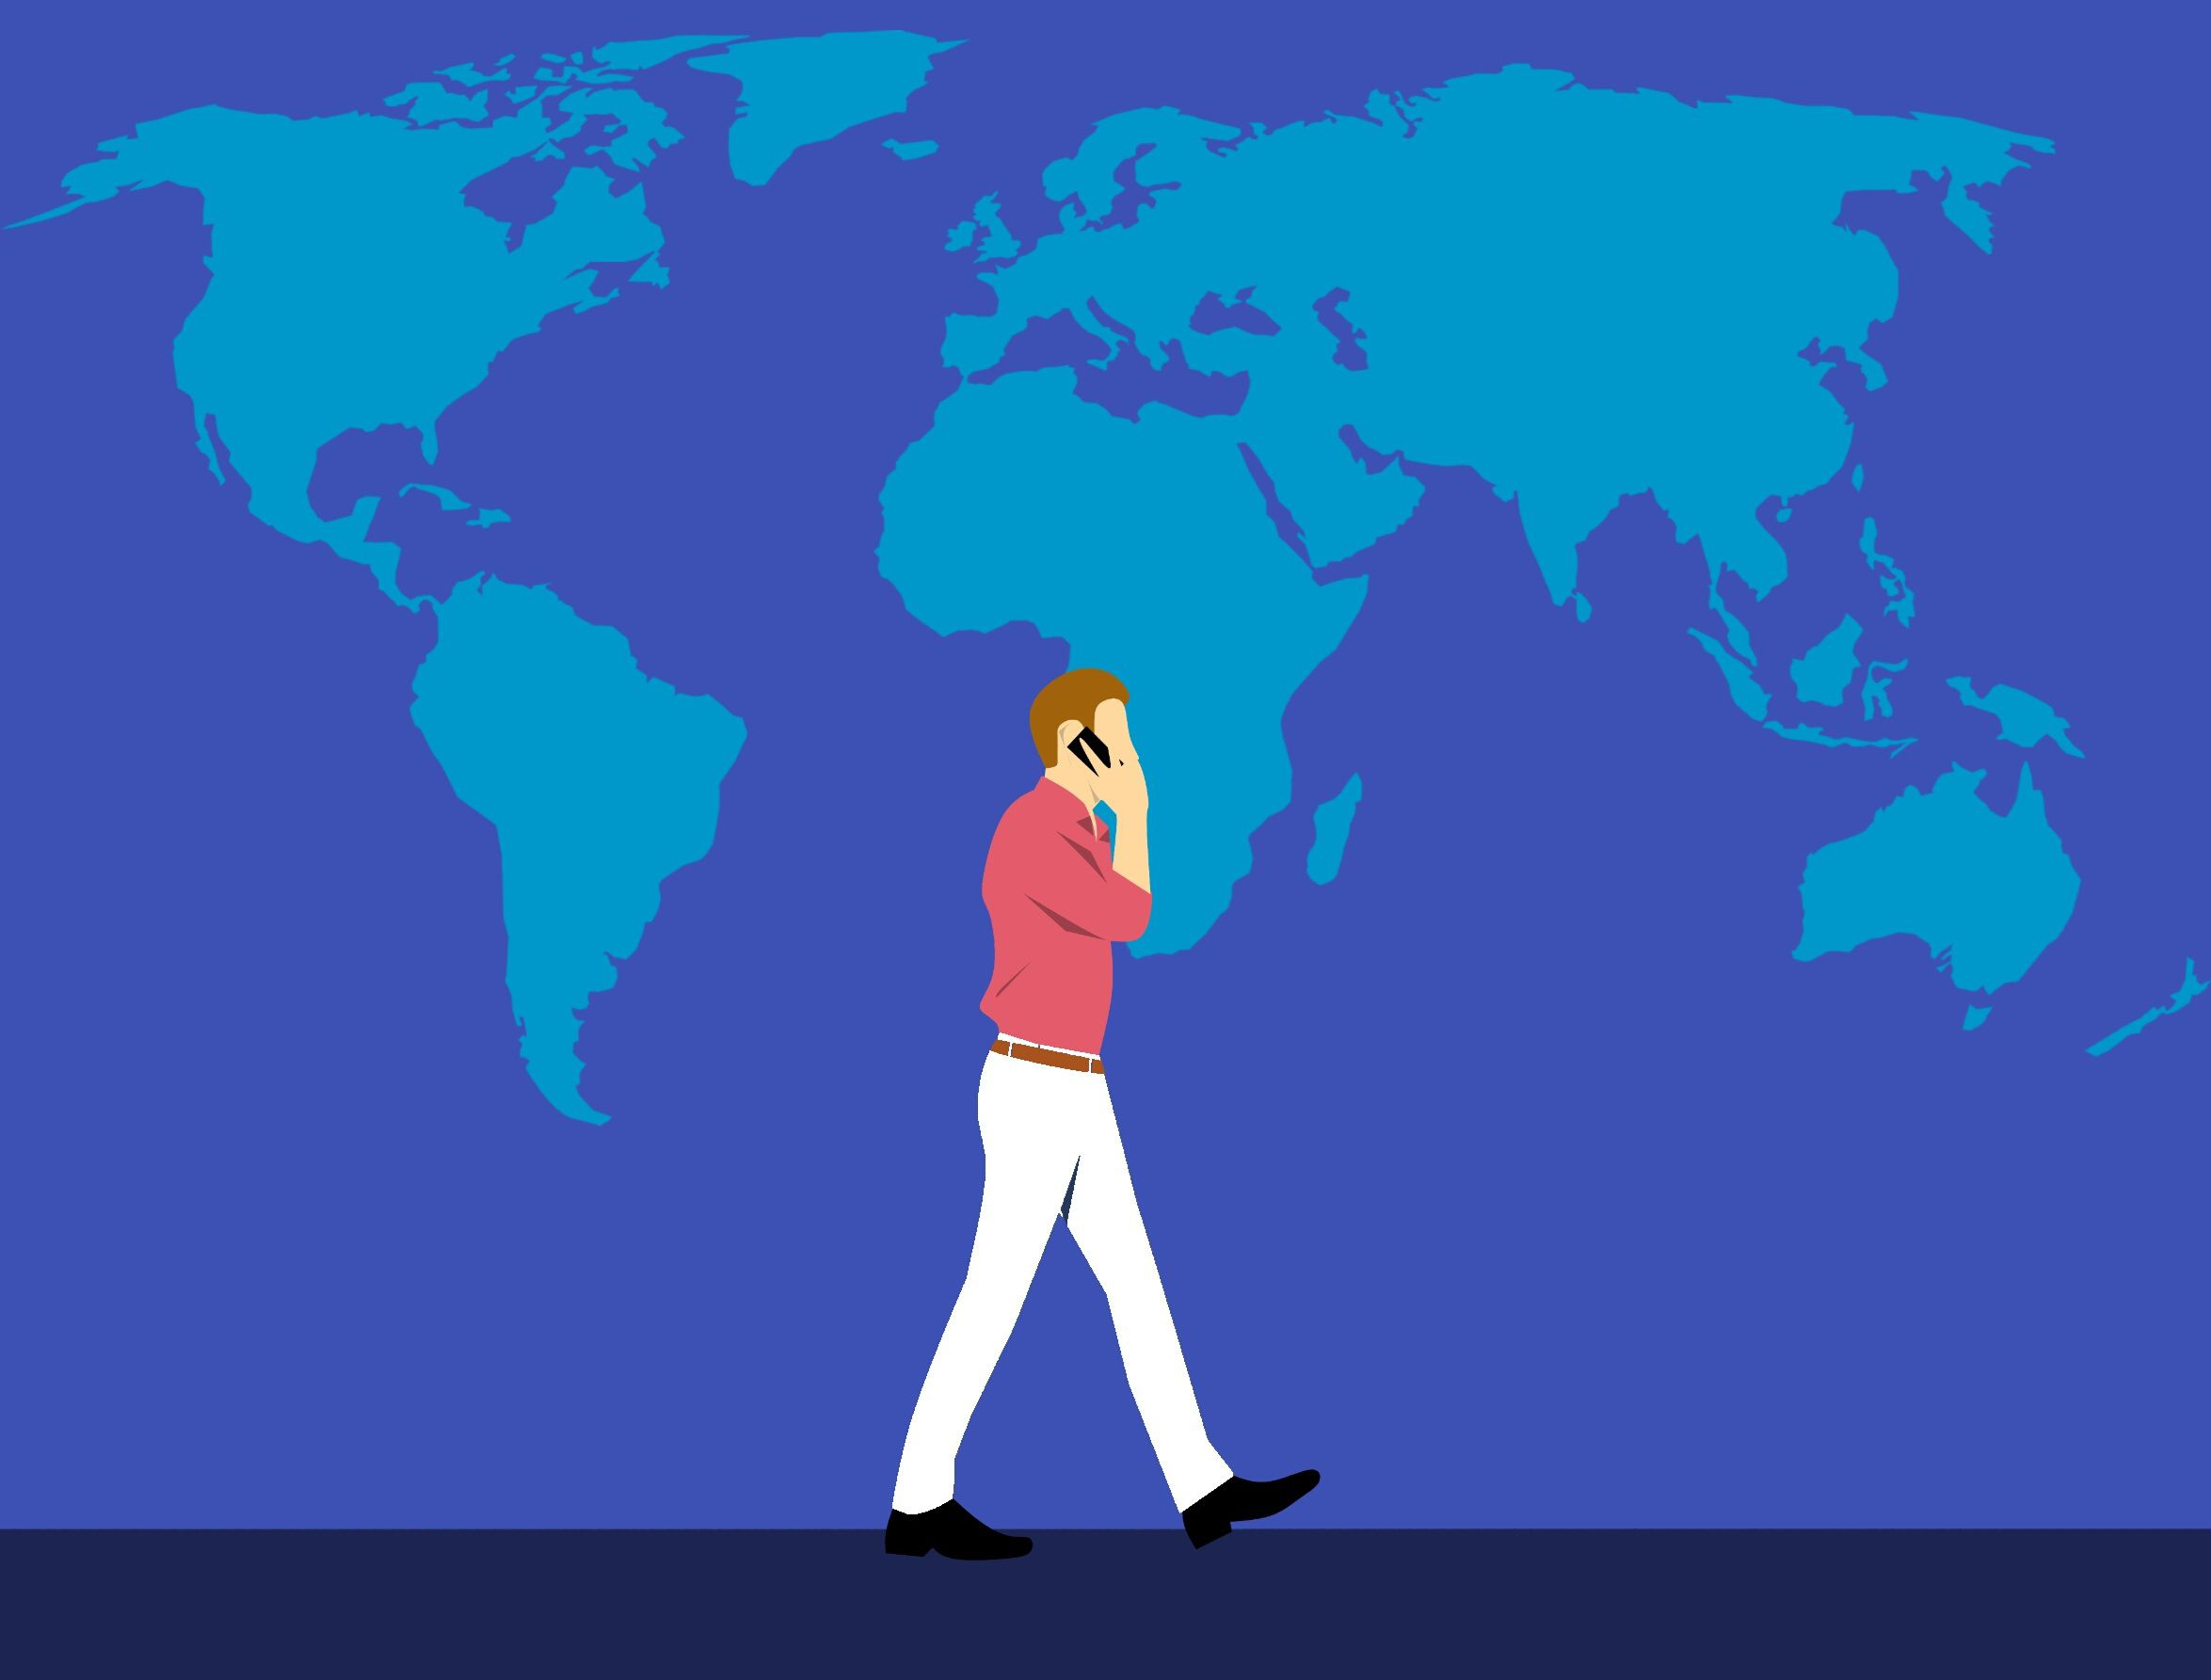 Illustration of man on mobile phone in front of world map